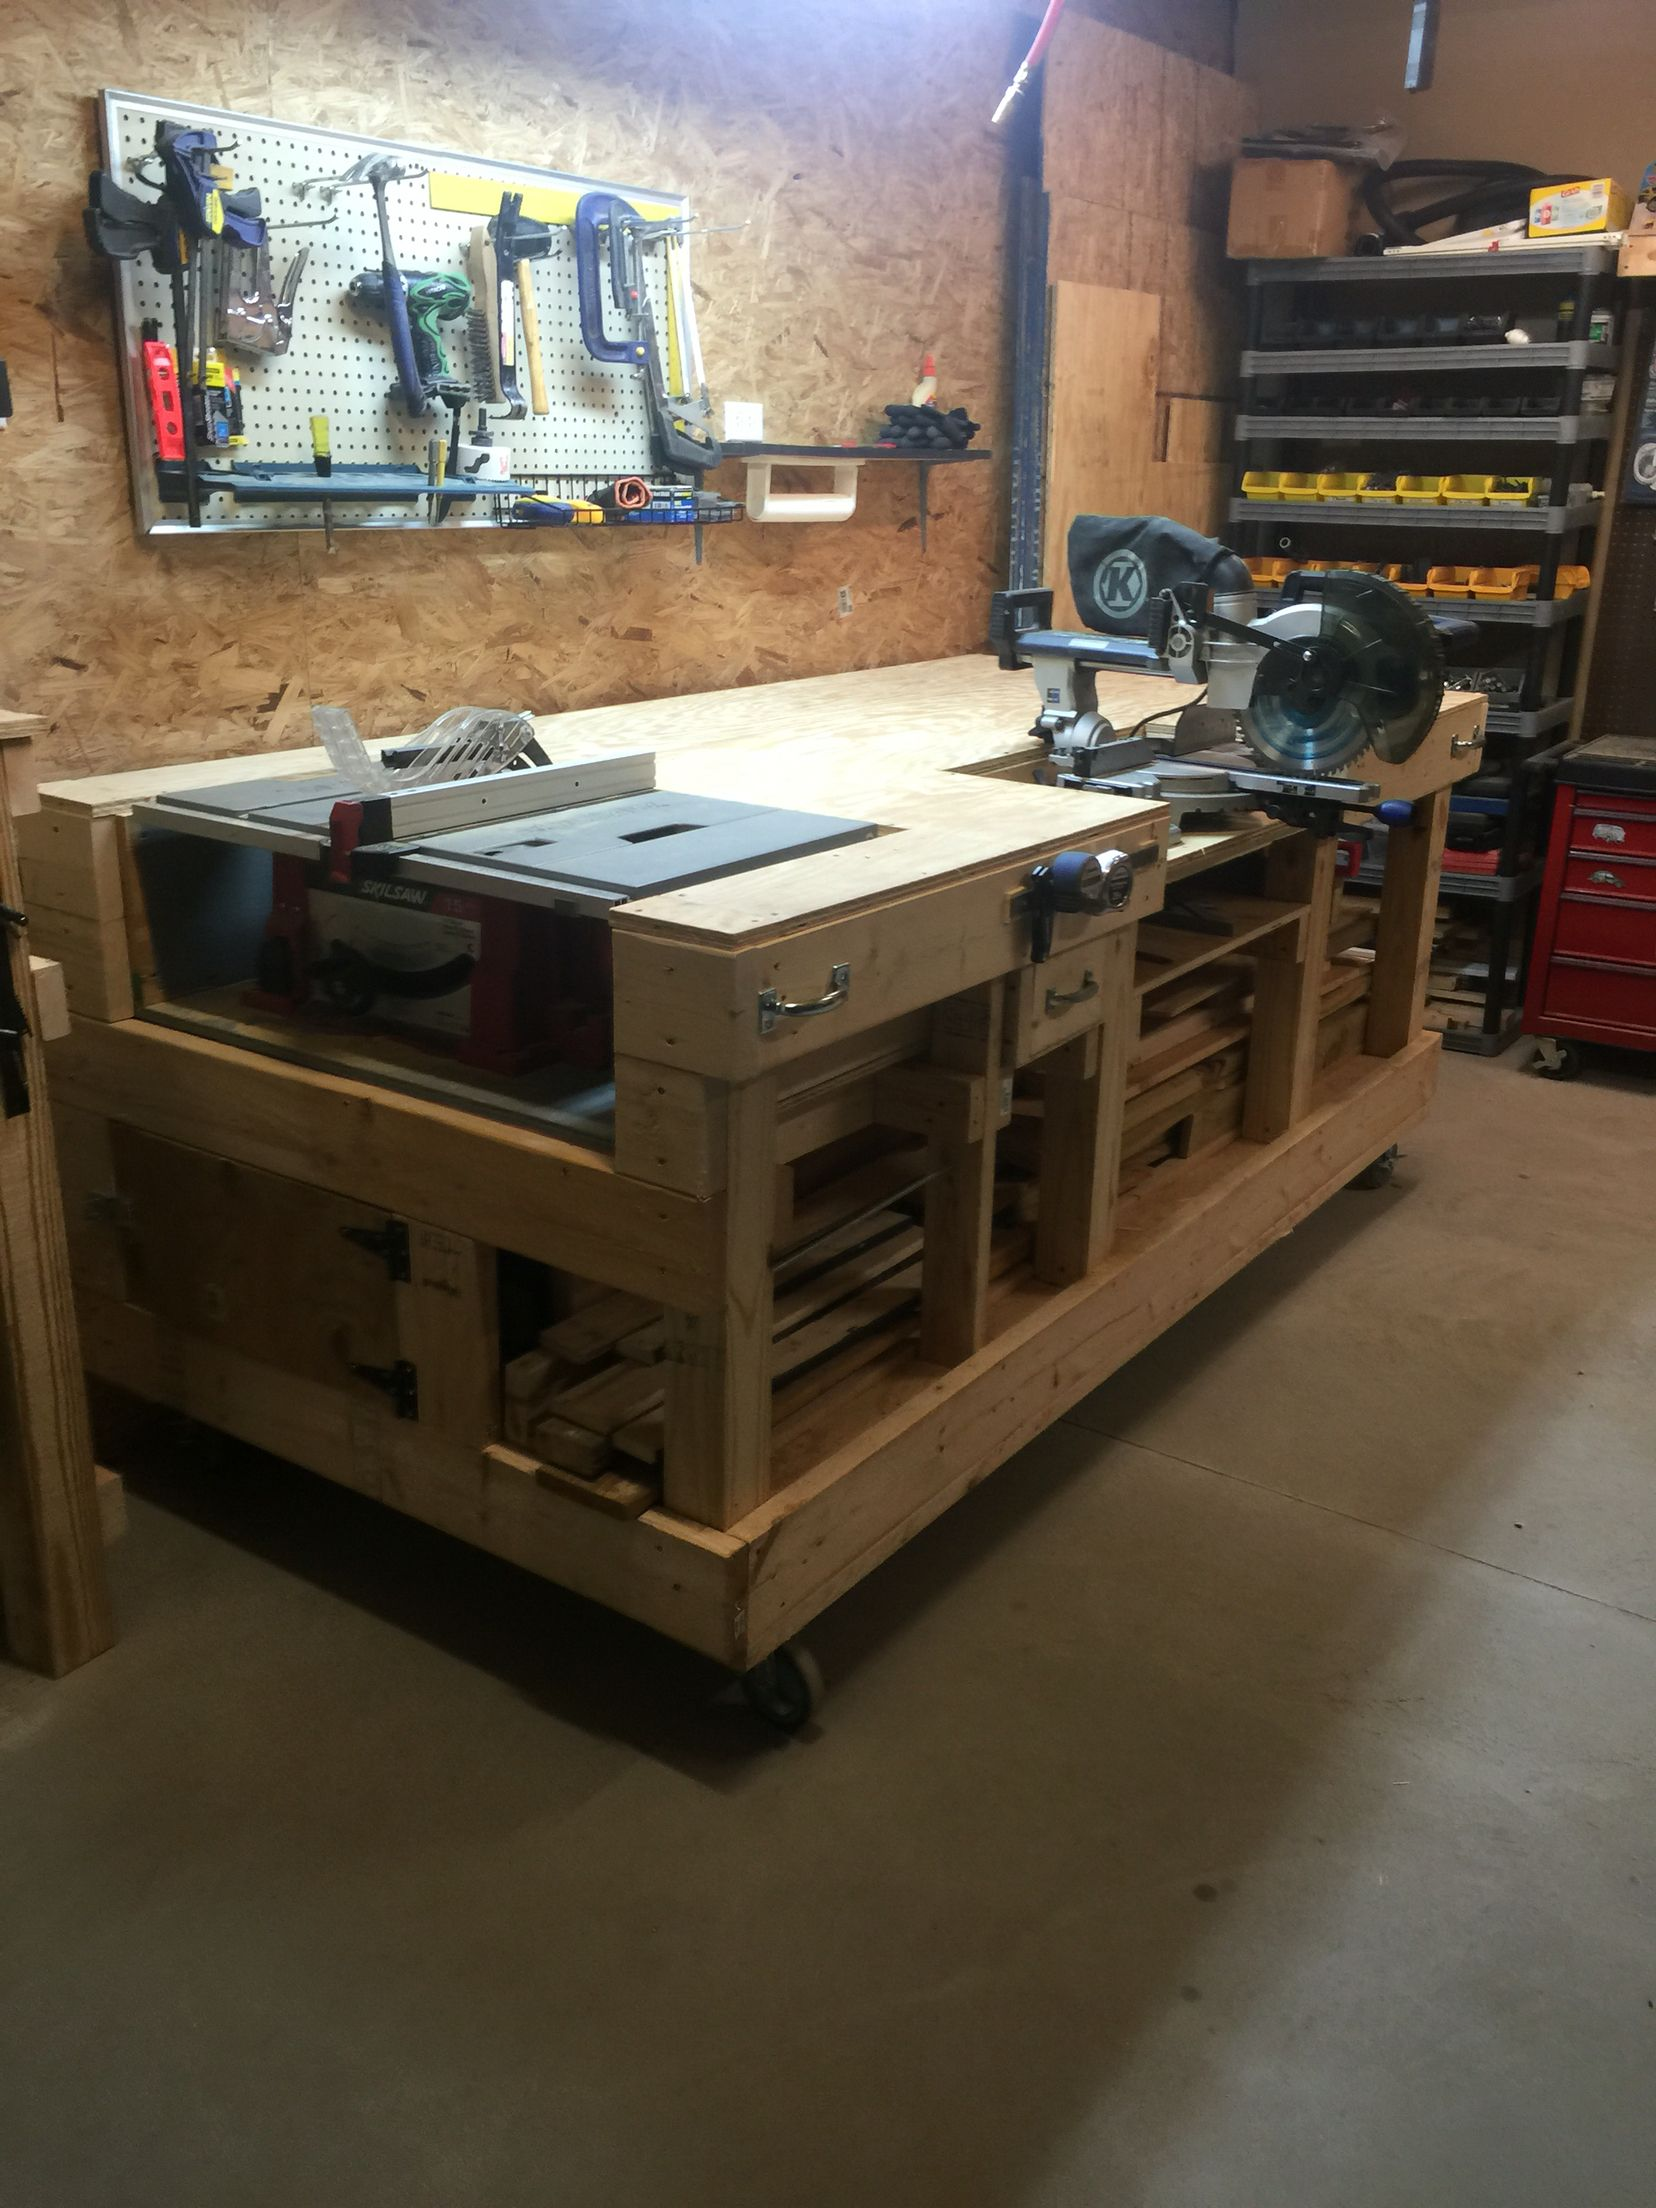 Tool Bench Organization Ideas Part - 49: Saw Table Work Bench. Created Storage Cabinet On Side For All Power Tools